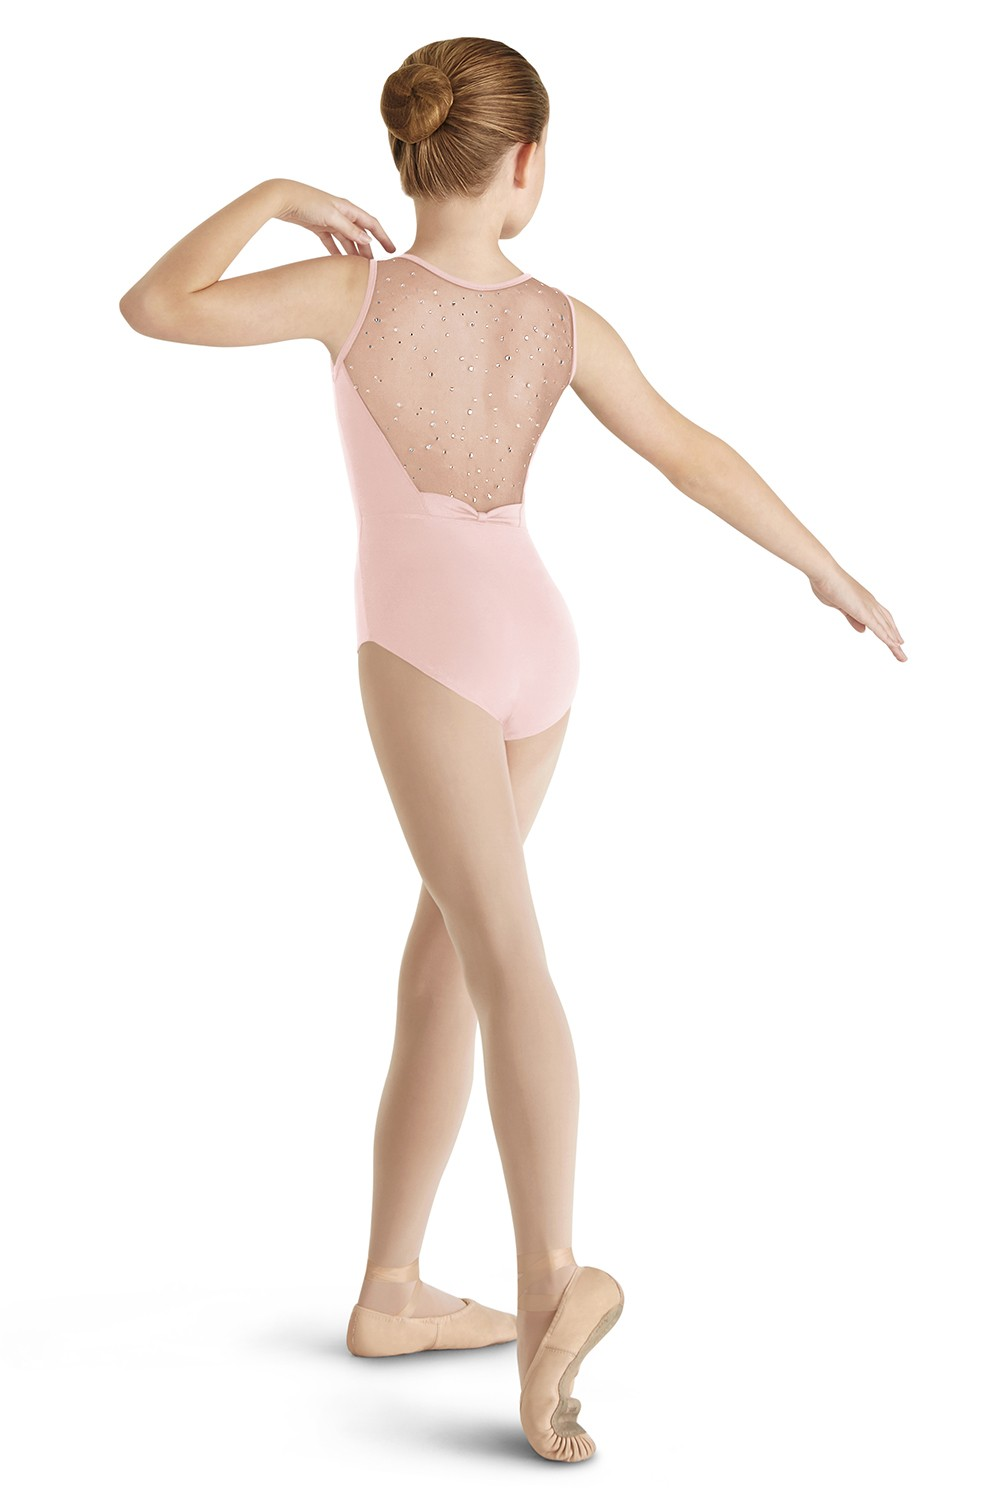 Justaucorps Sans Manches, Nœud Dans Le Dos Children's Dance Leotards